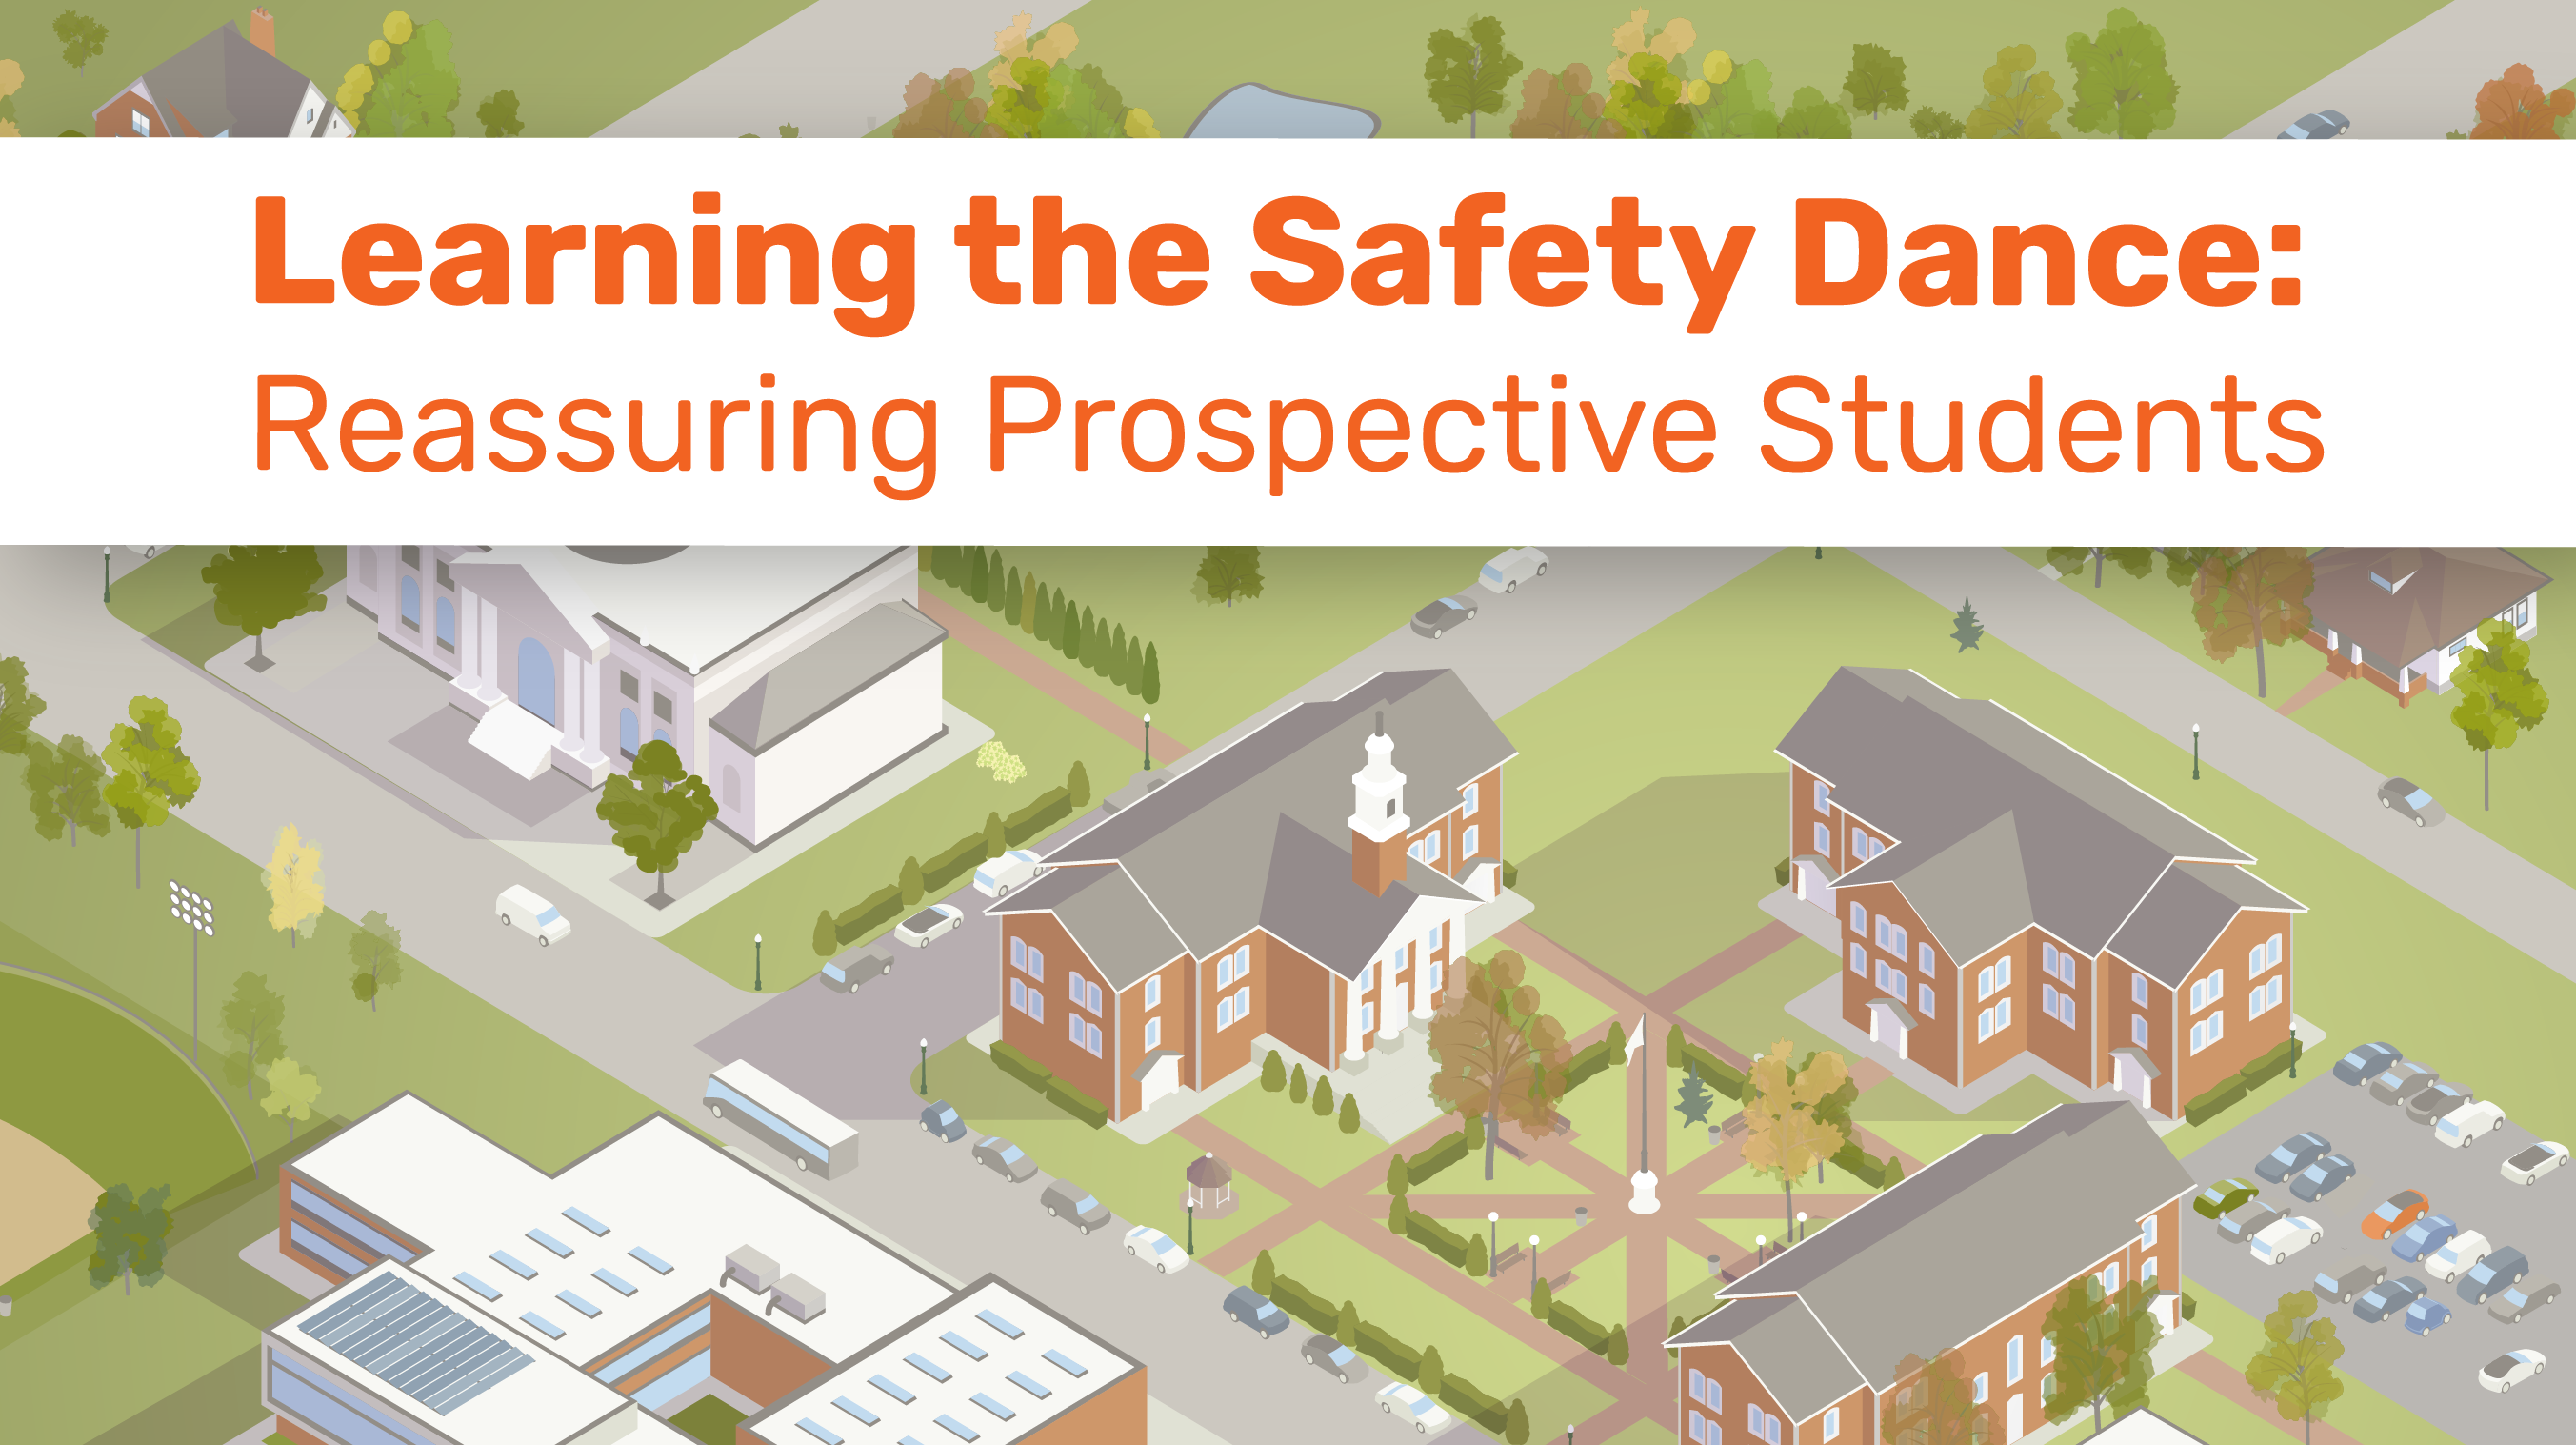 Learning the Safety Dance: Reassuring Prospective Students